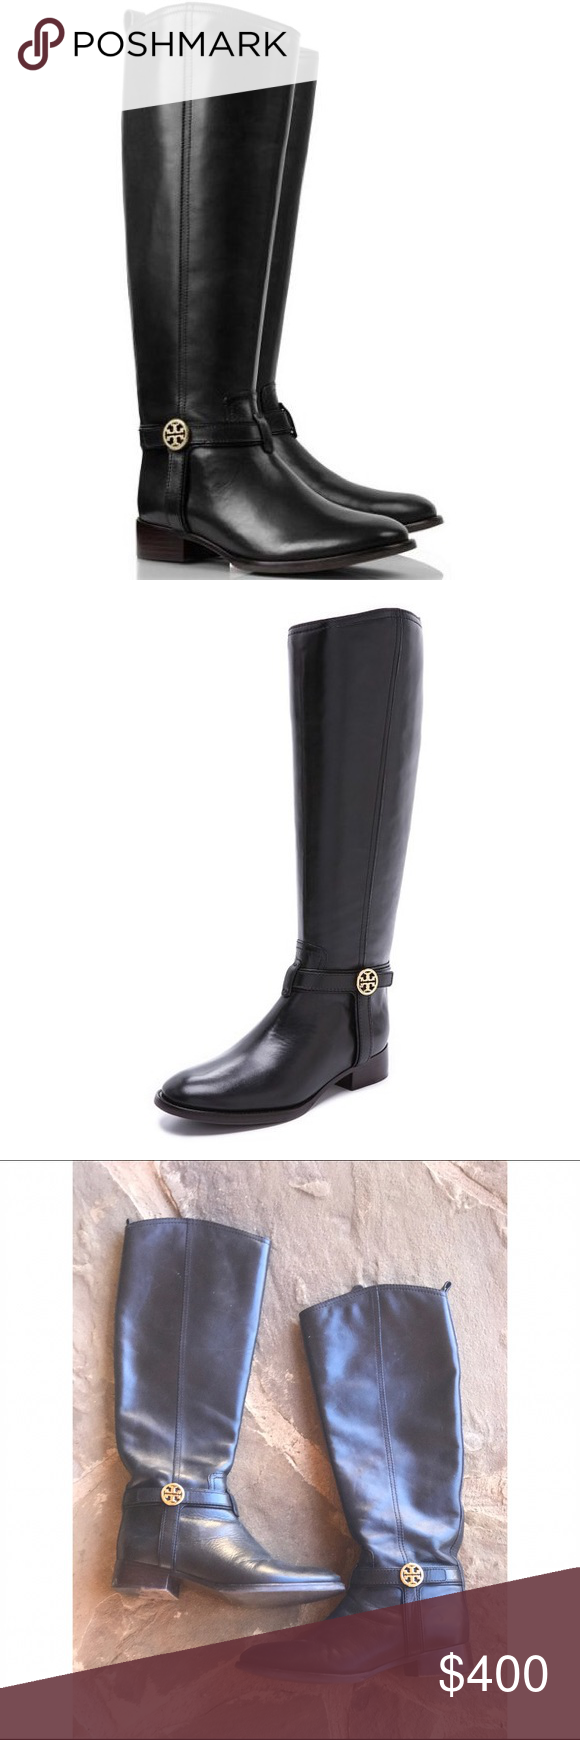 37516302d612 Tory Burch Black Riding Boots Gorgeous Tory Boots